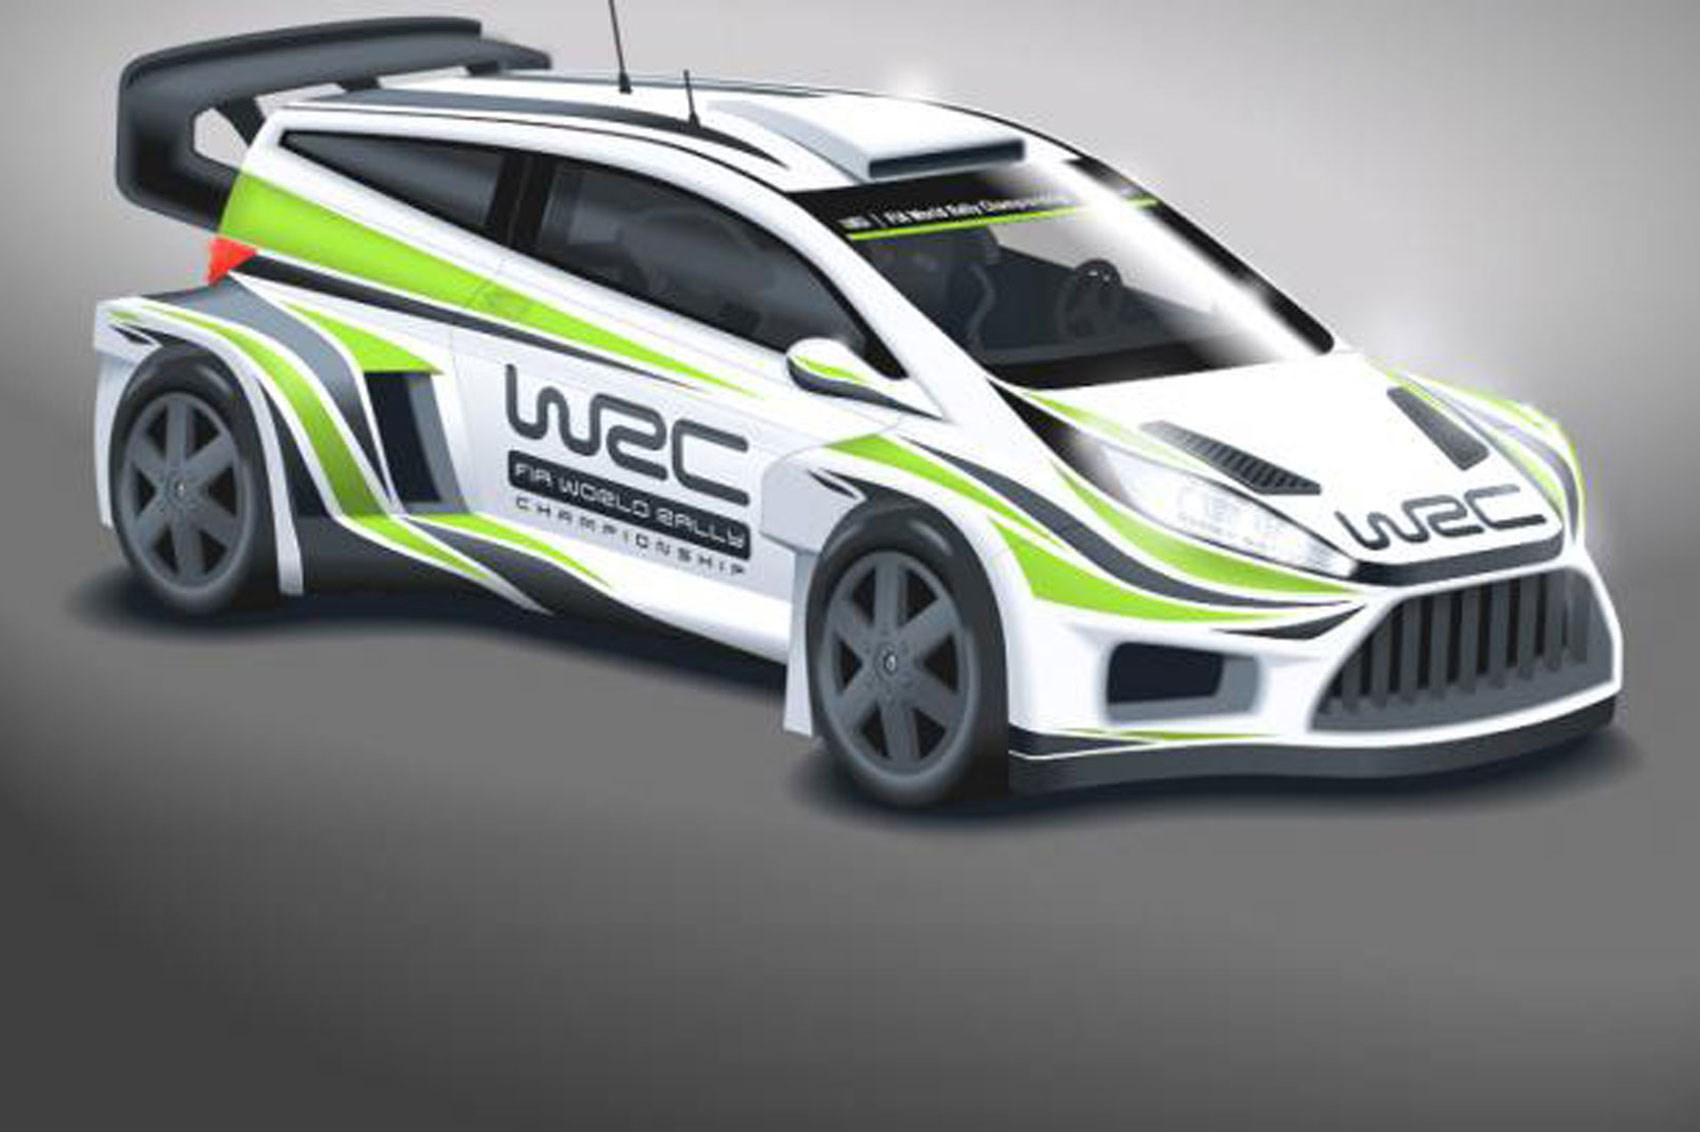 Ultrablogus  Pleasing Wild New Look For Wrc Cars In  By Car Magazine With Inspiring Wrc Cars Will Get Wider Bodies Bigger Wings And More Power For  With Extraordinary  Bel Air Interior Also Bmw I Coupe Interior In Addition Prowler Interior And Impala Interior As Well As  Porsche  Interior Additionally Nissan Juke S Interior From Carmagazinecouk With Ultrablogus  Inspiring Wild New Look For Wrc Cars In  By Car Magazine With Extraordinary Wrc Cars Will Get Wider Bodies Bigger Wings And More Power For  And Pleasing  Bel Air Interior Also Bmw I Coupe Interior In Addition Prowler Interior From Carmagazinecouk